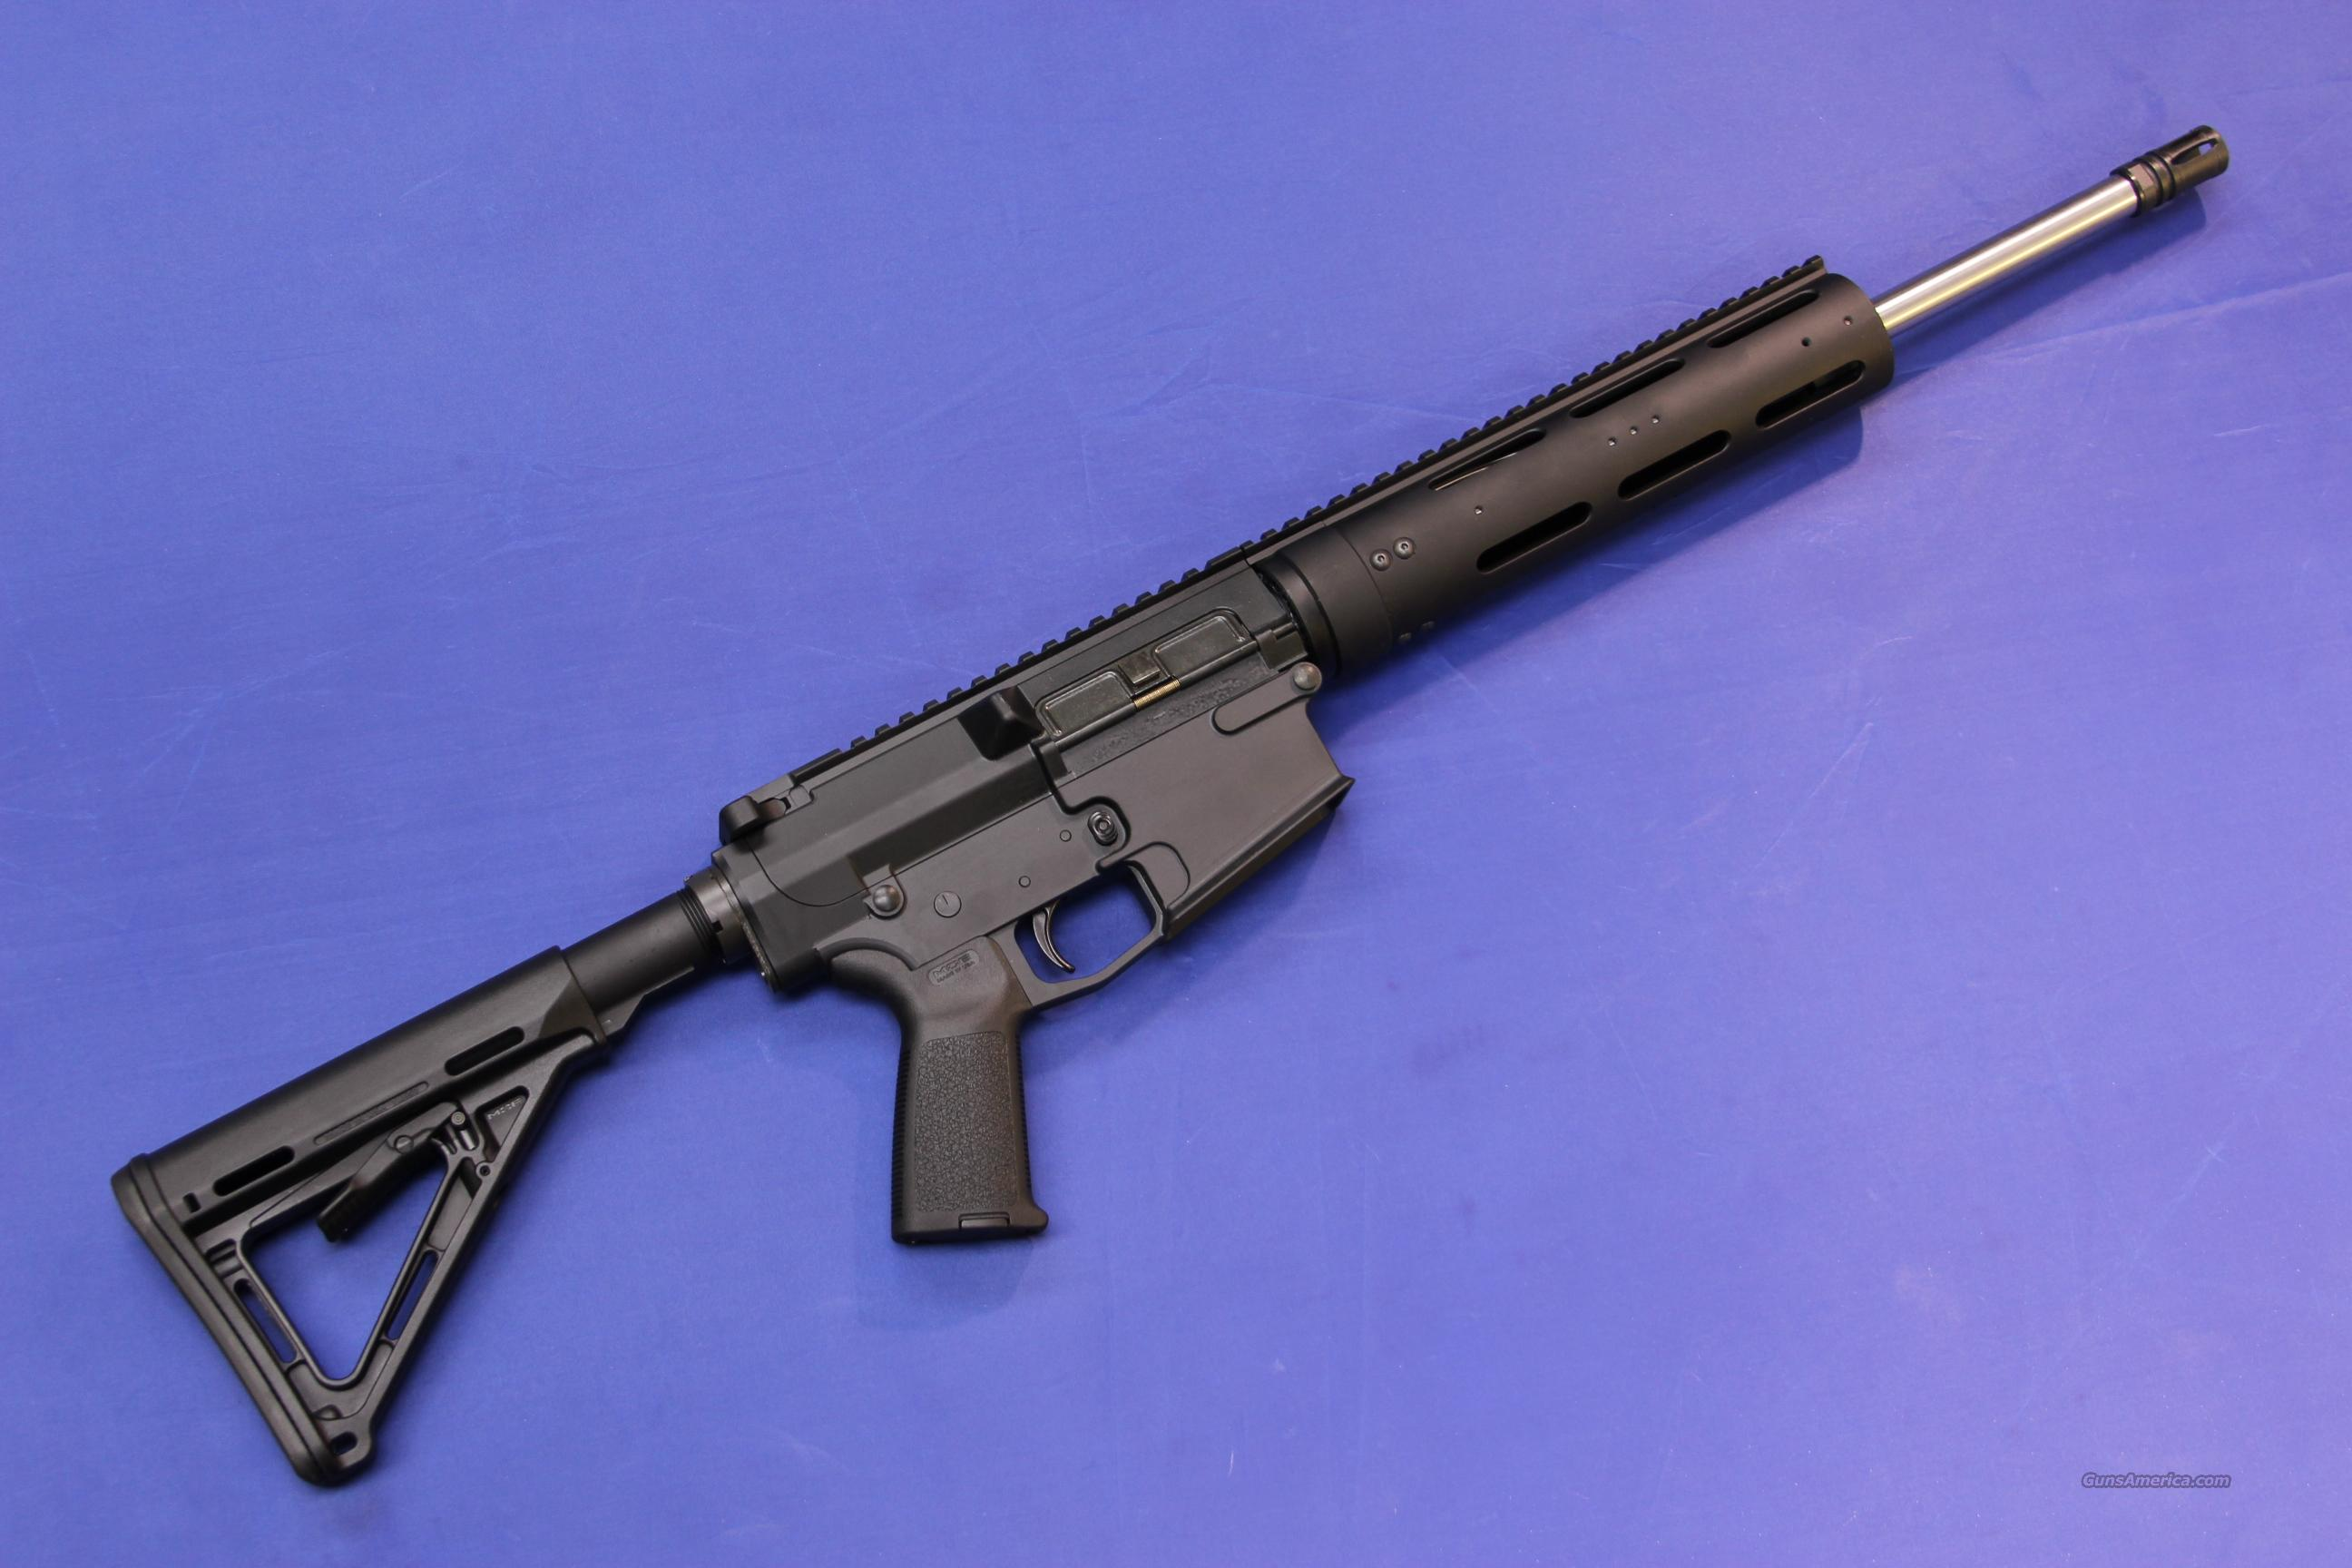 CMMG MK-3 AR-10 MOE .308 WIN (7.62 NATO) HEAVY BARREL CARBINE - NEW!  Guns > Rifles > AR-15 Rifles - Small Manufacturers > Complete Rifle